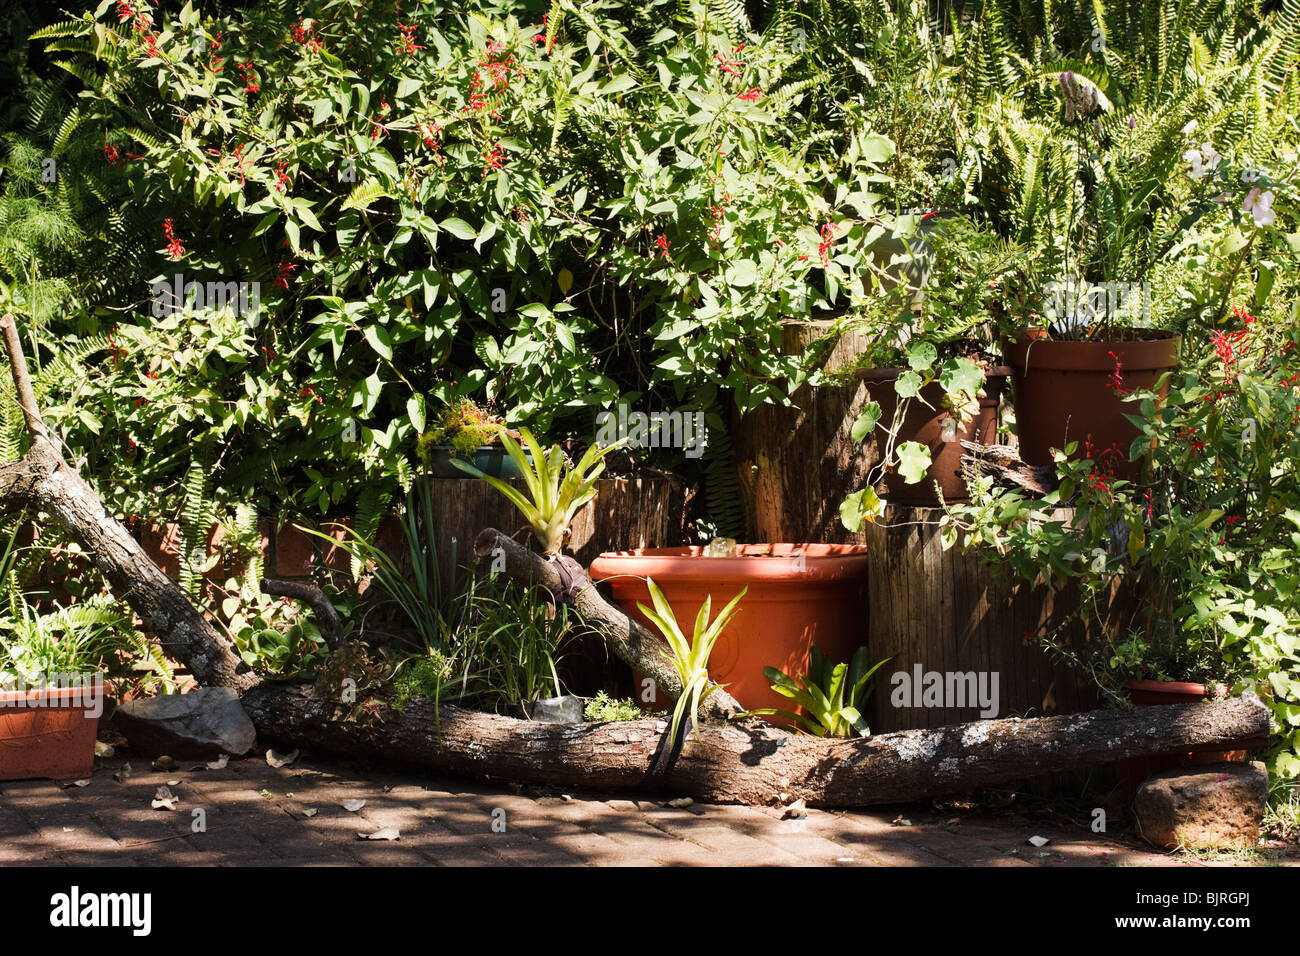 Pot Plants, Log, Rocks And Water Feature Make Up A Container Garden In A  Corner Of A Paved Patio